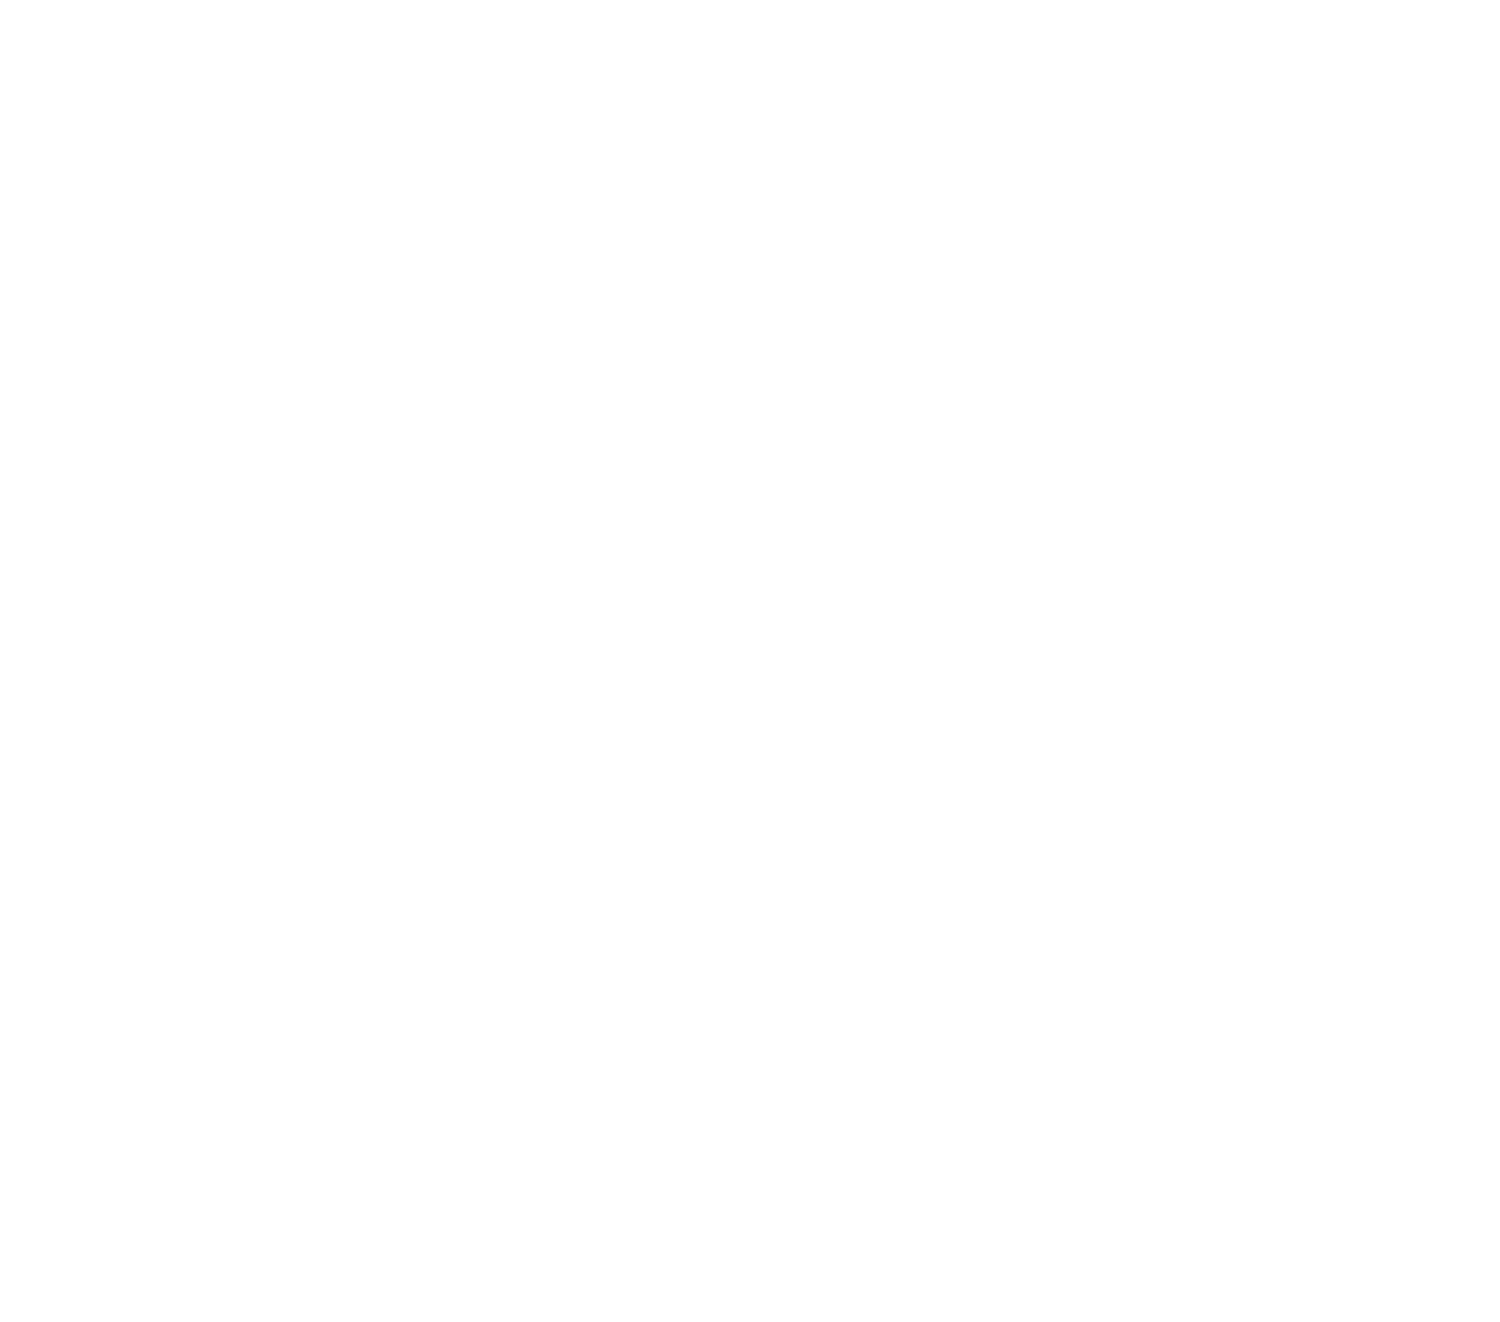 My House NOLA